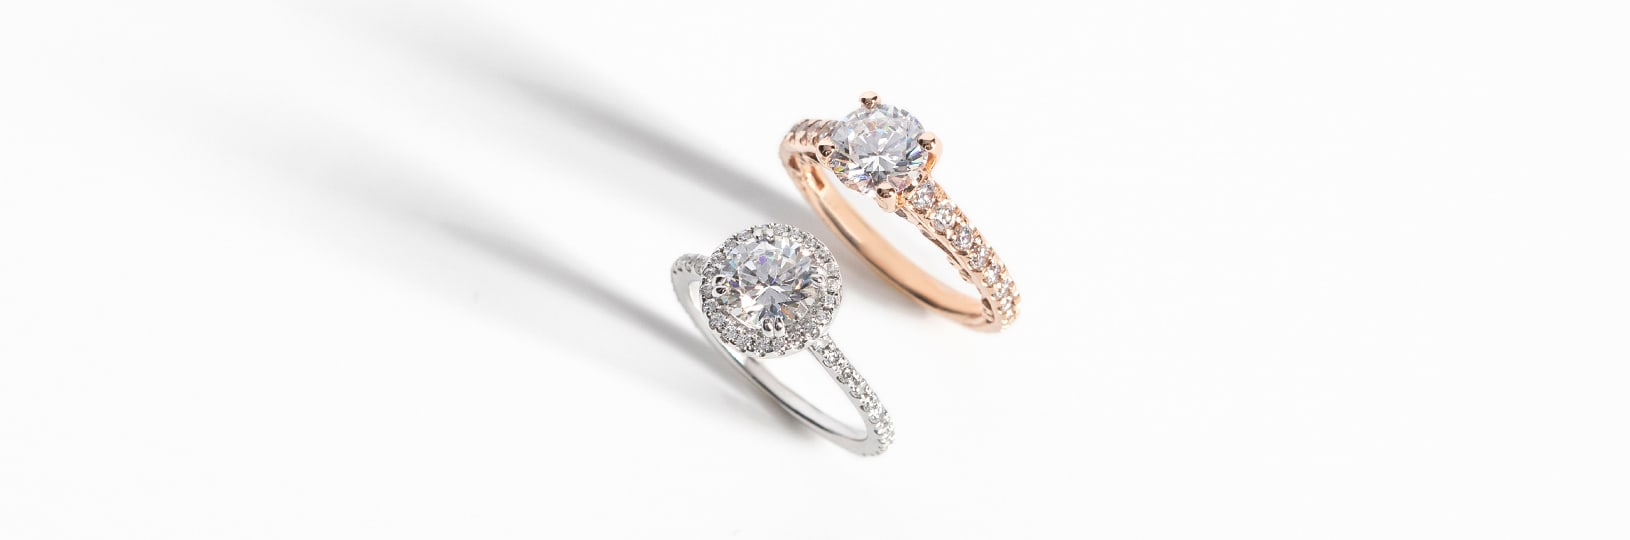 Dainty engagement ring styles